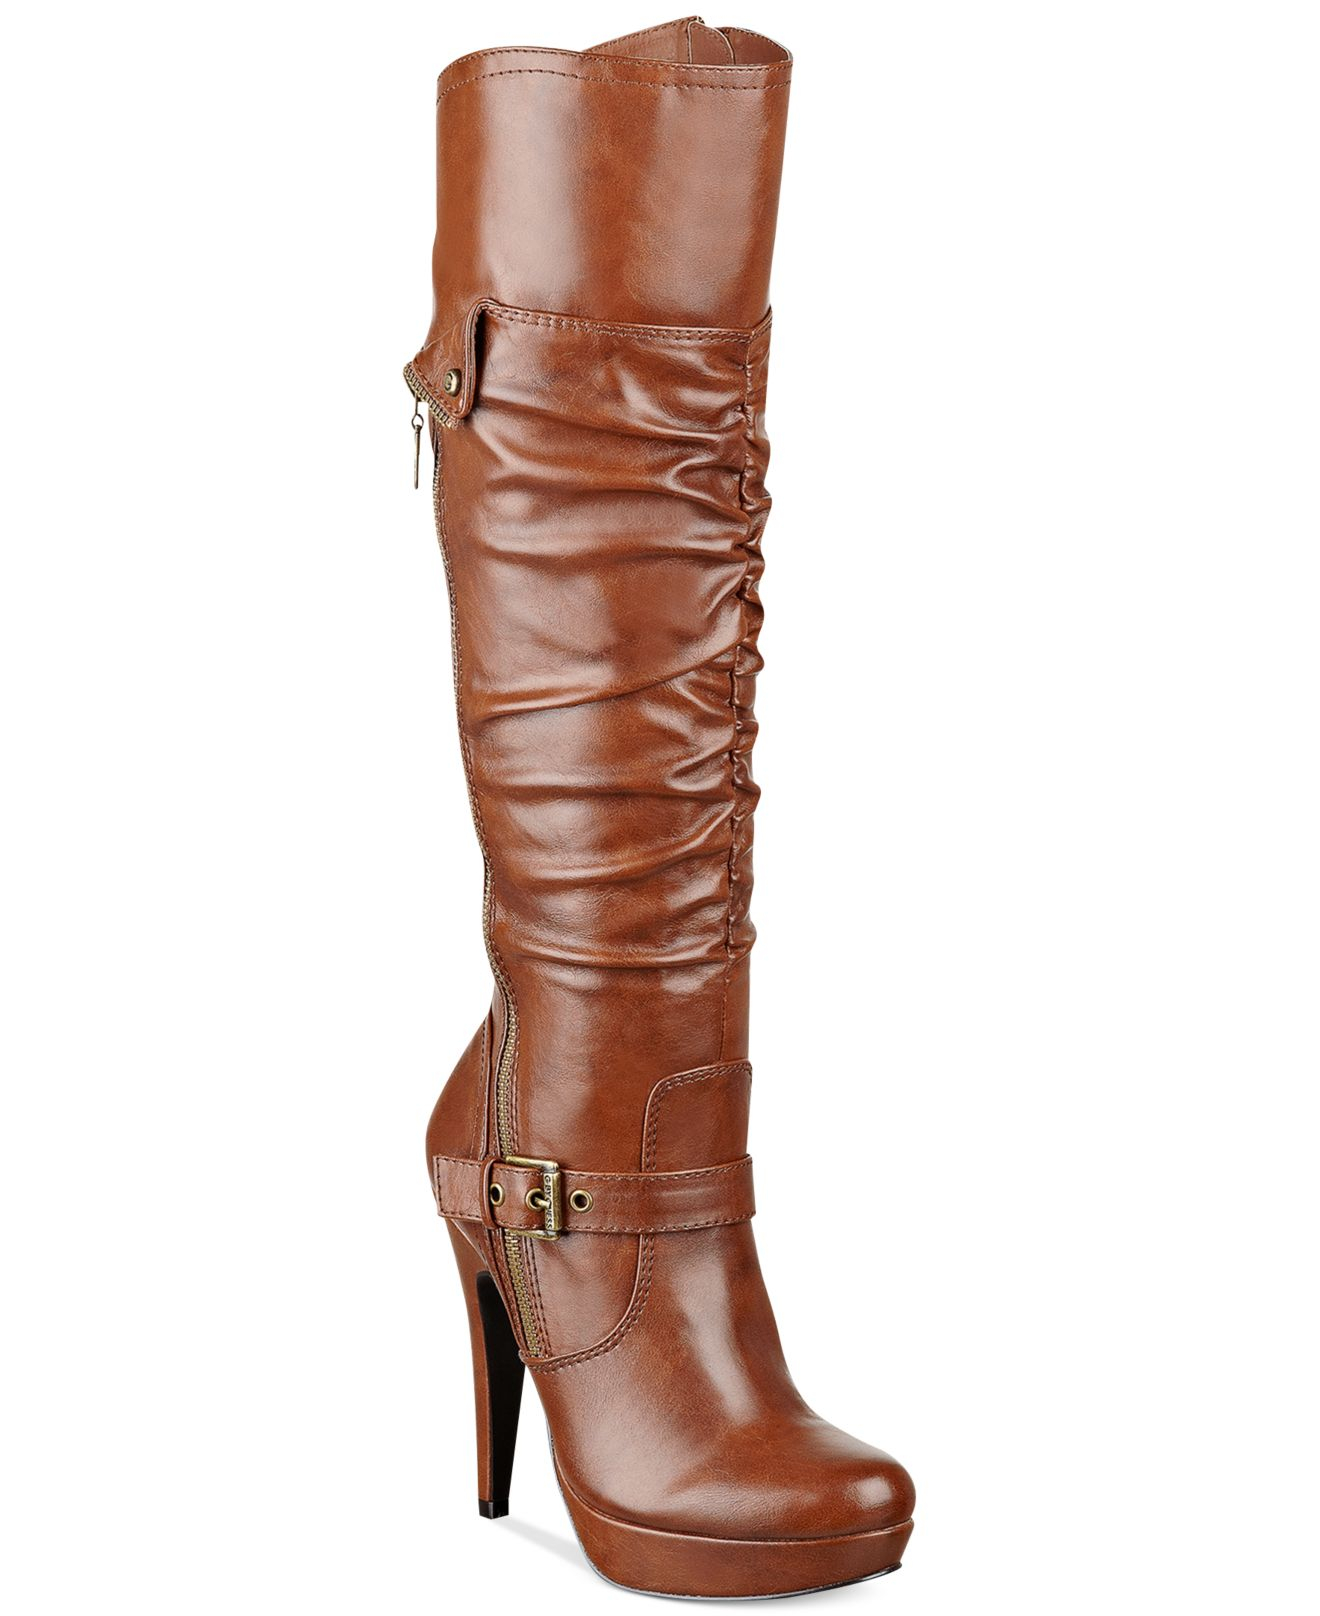 f71ce5b57ff Lyst - G by Guess Women S Drea Platform Dress Boots in Brown